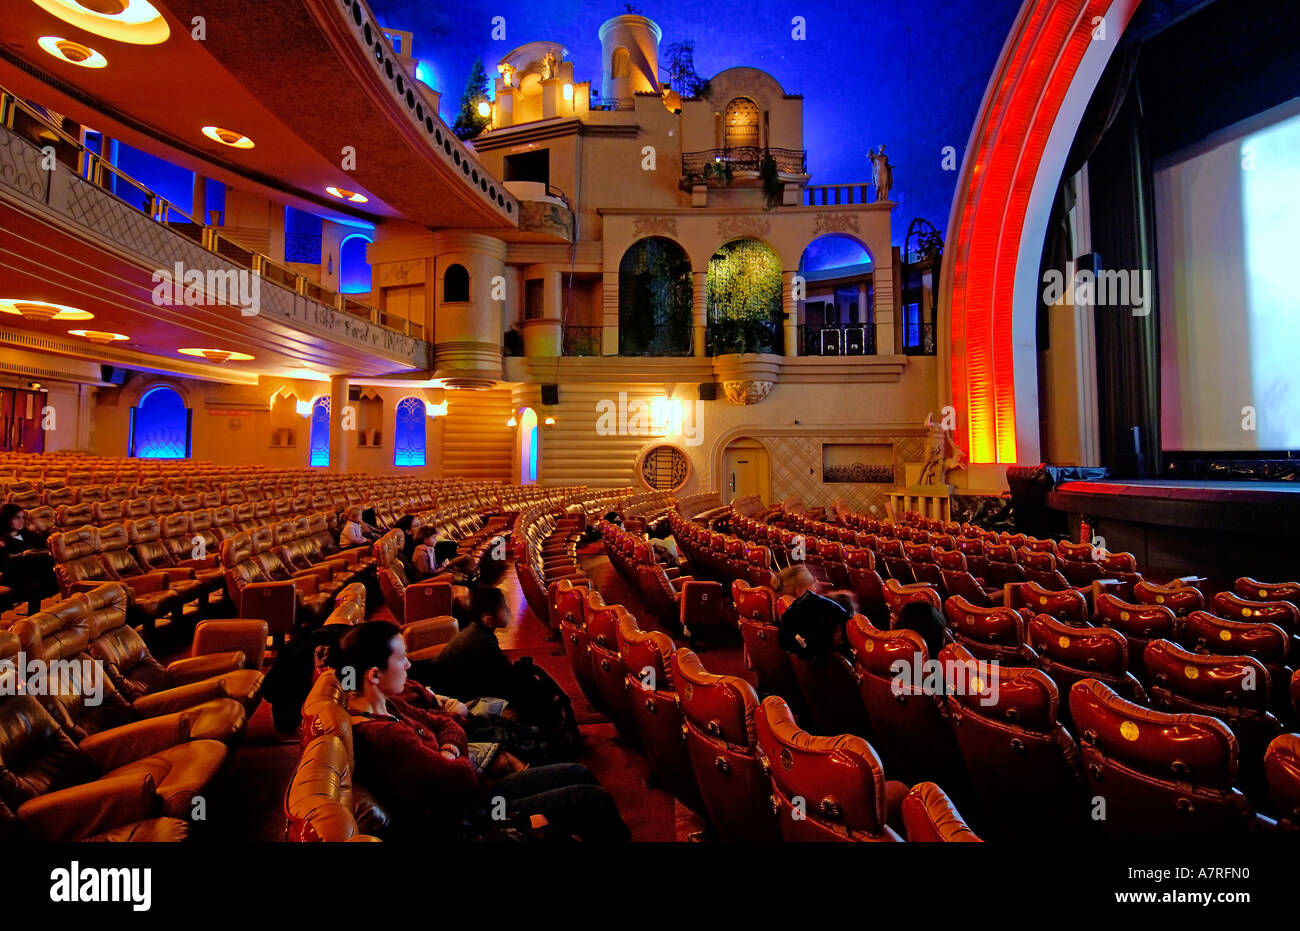 france paris grand rex cinema stock photo 6800015 alamy. Black Bedroom Furniture Sets. Home Design Ideas